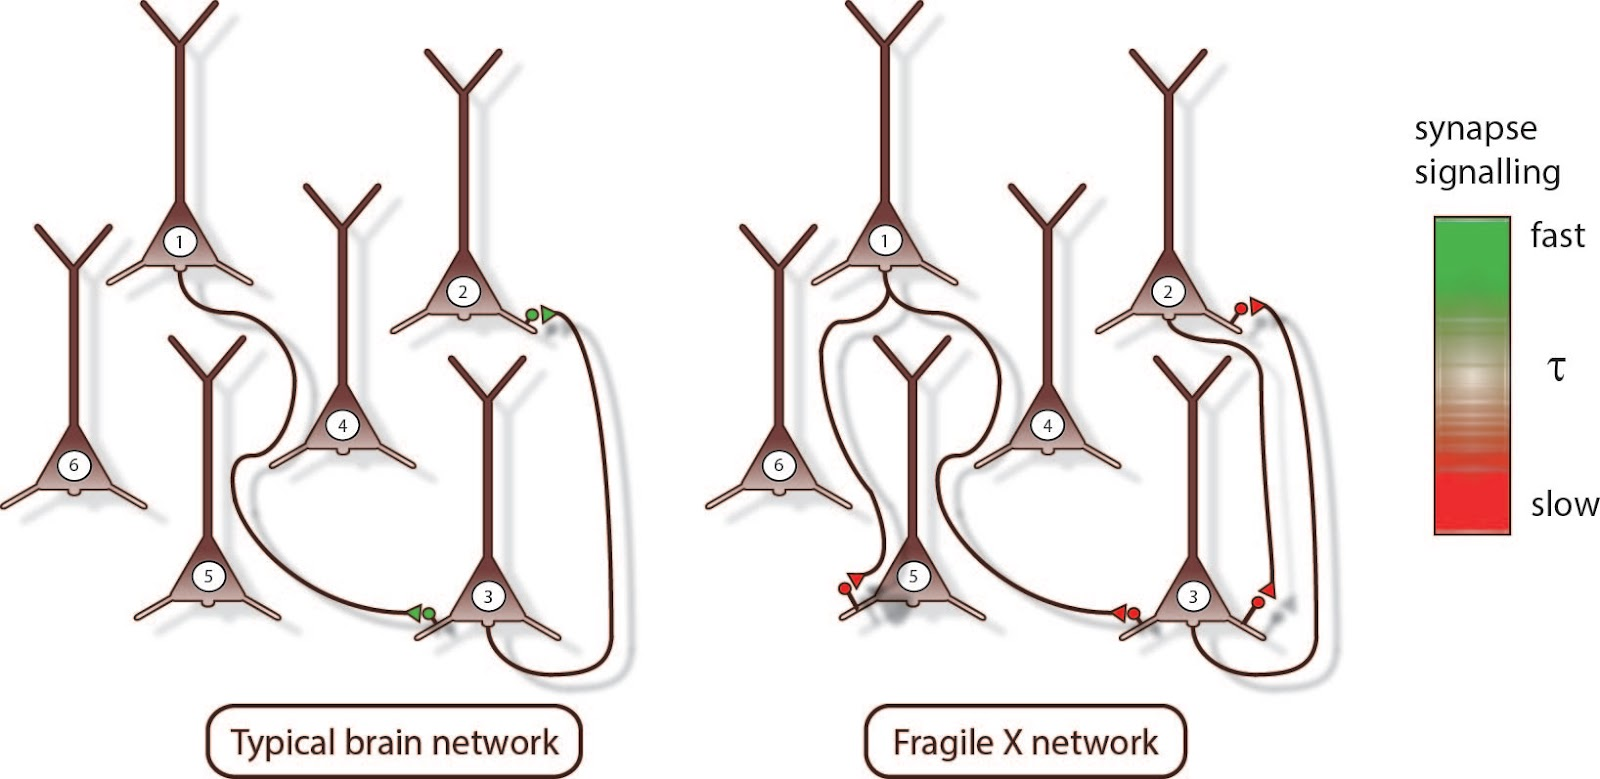 small resolution of diagram of synapses in typical and fragile x brain networks